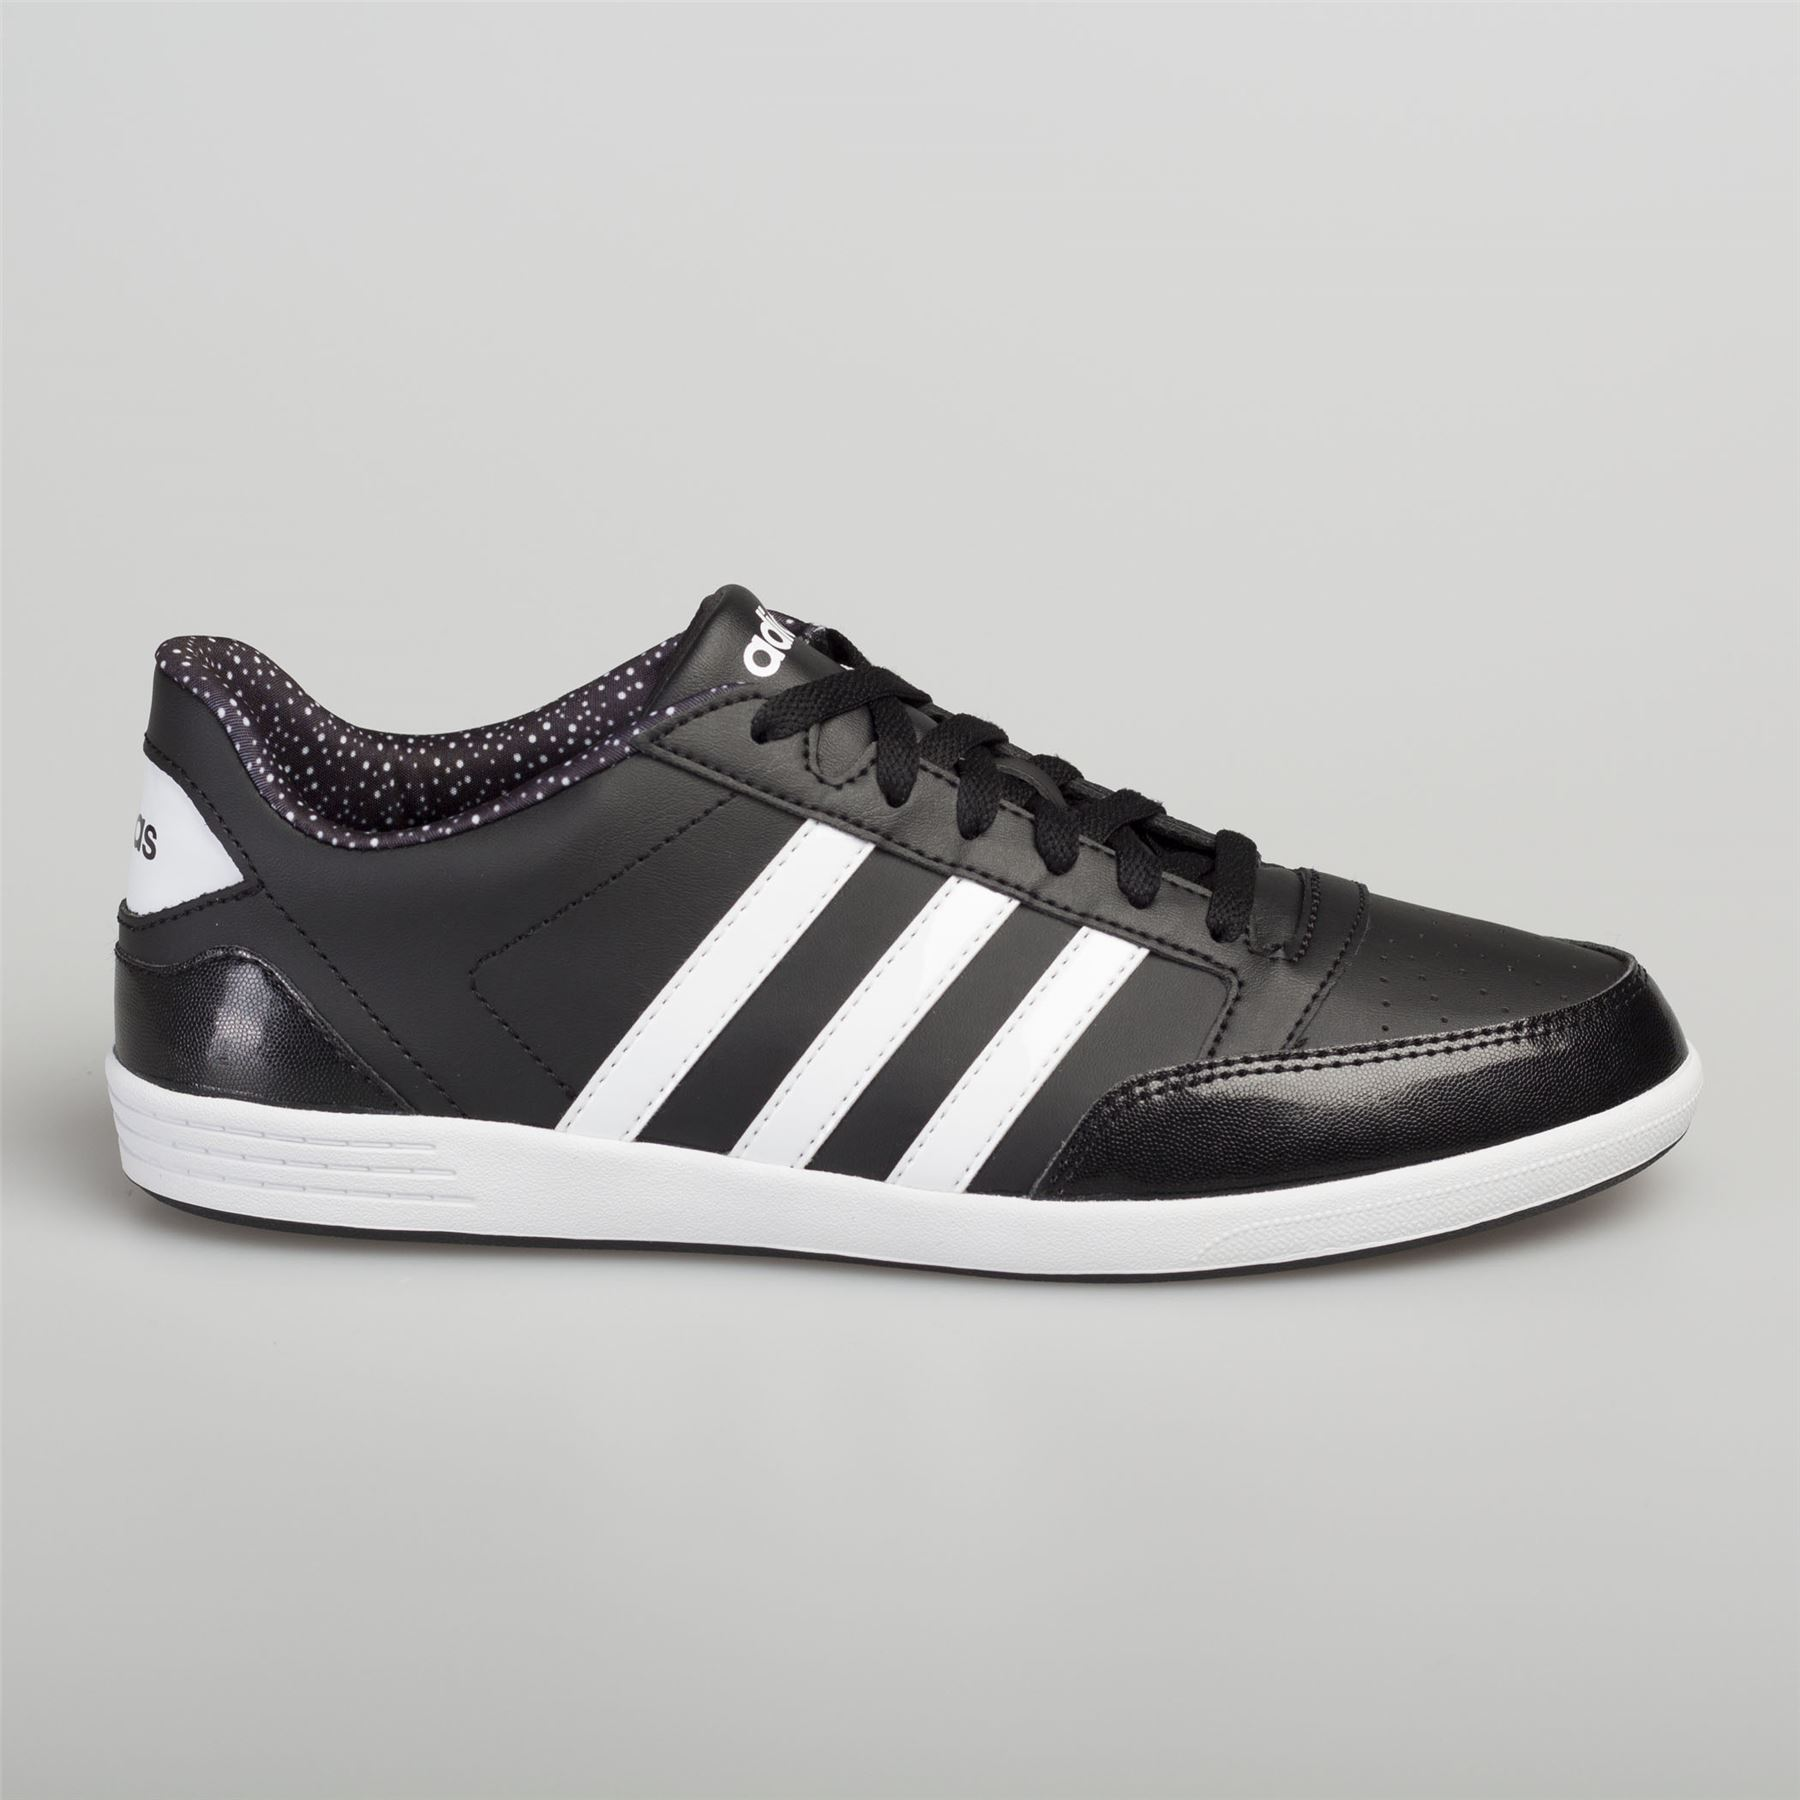 44e74a42be0d6 Adidas Men s Women s Leather Trainers Calneo Lite Racer Hoops VL Black White